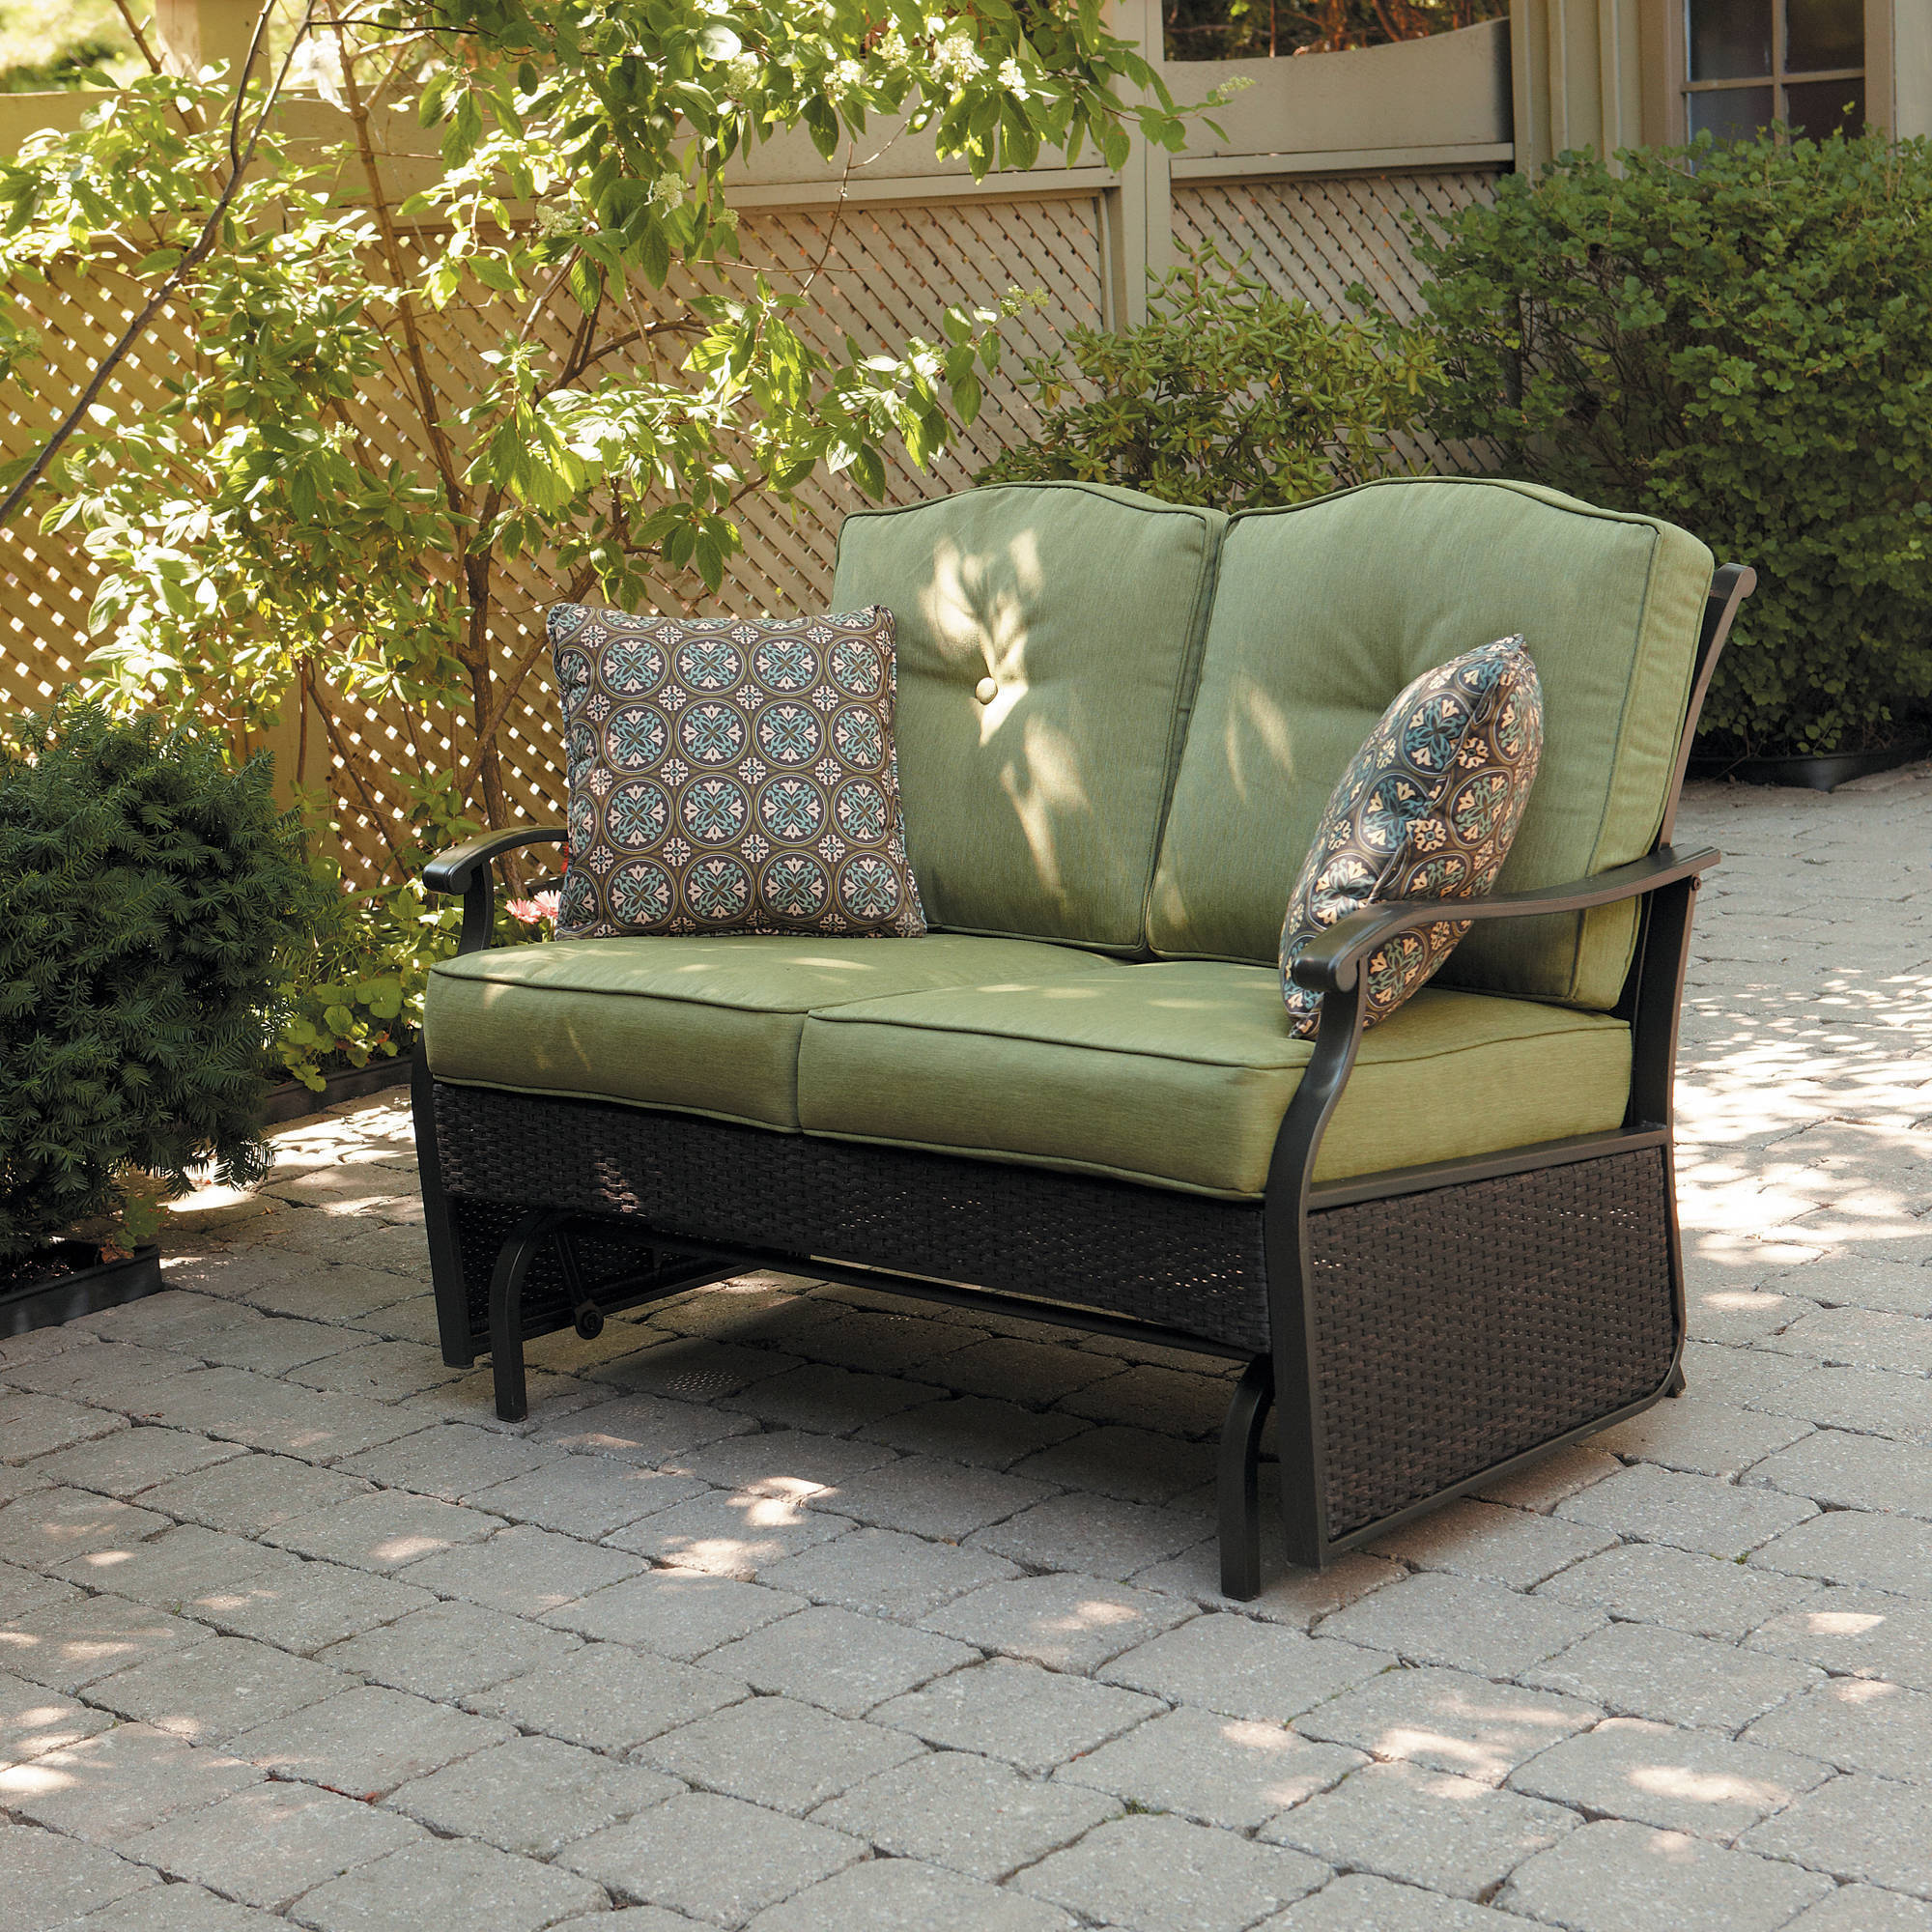 Better Homes U0026 Gardens Providence 2 Person Outdoor Glider Loveseat    Walmart.com